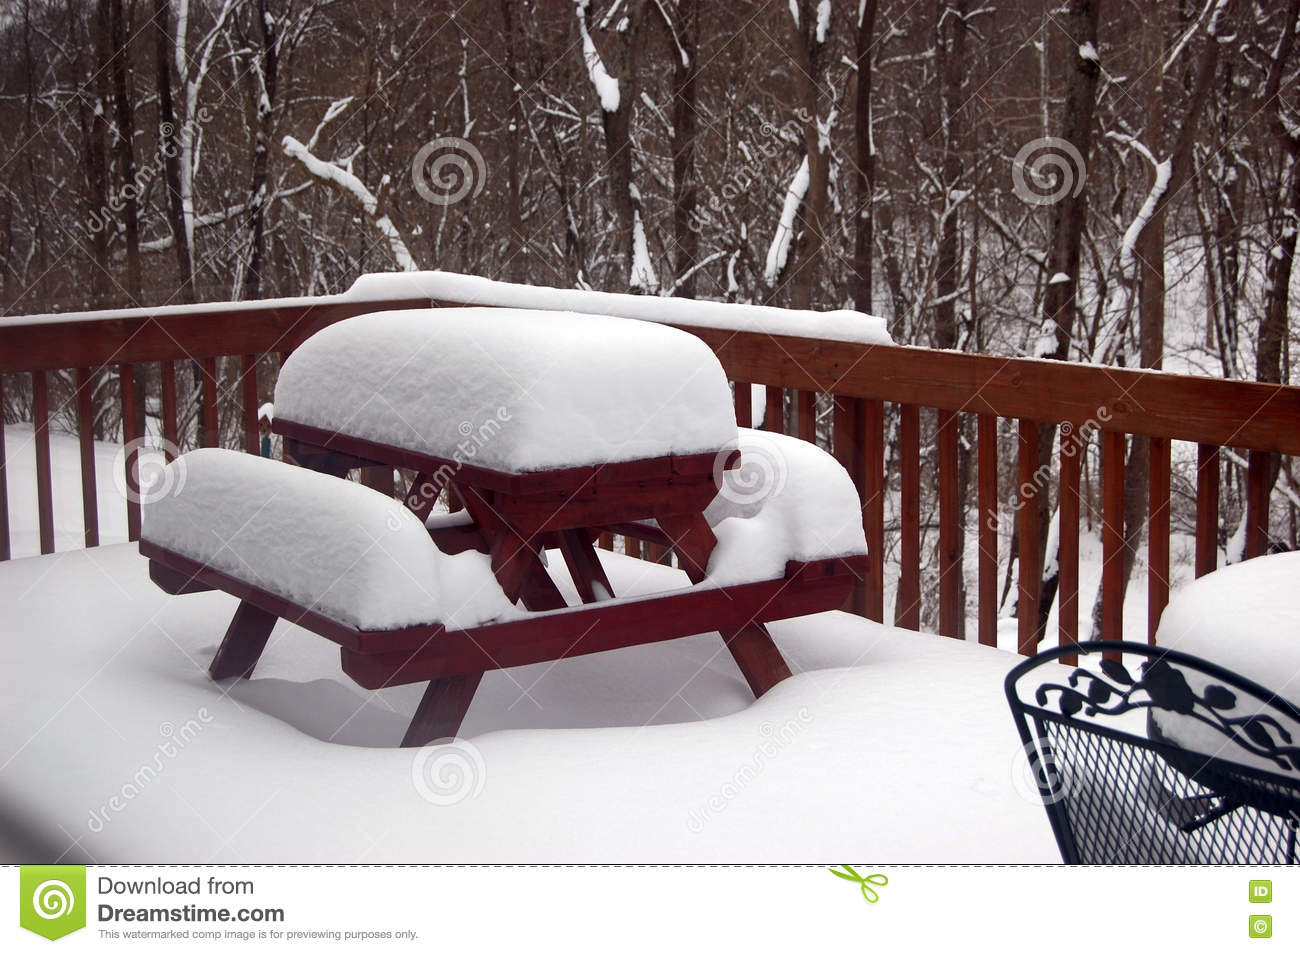 Download 10 Inches Of Snow On The Deck Stock Photo - Image of deck, cold: 81712508